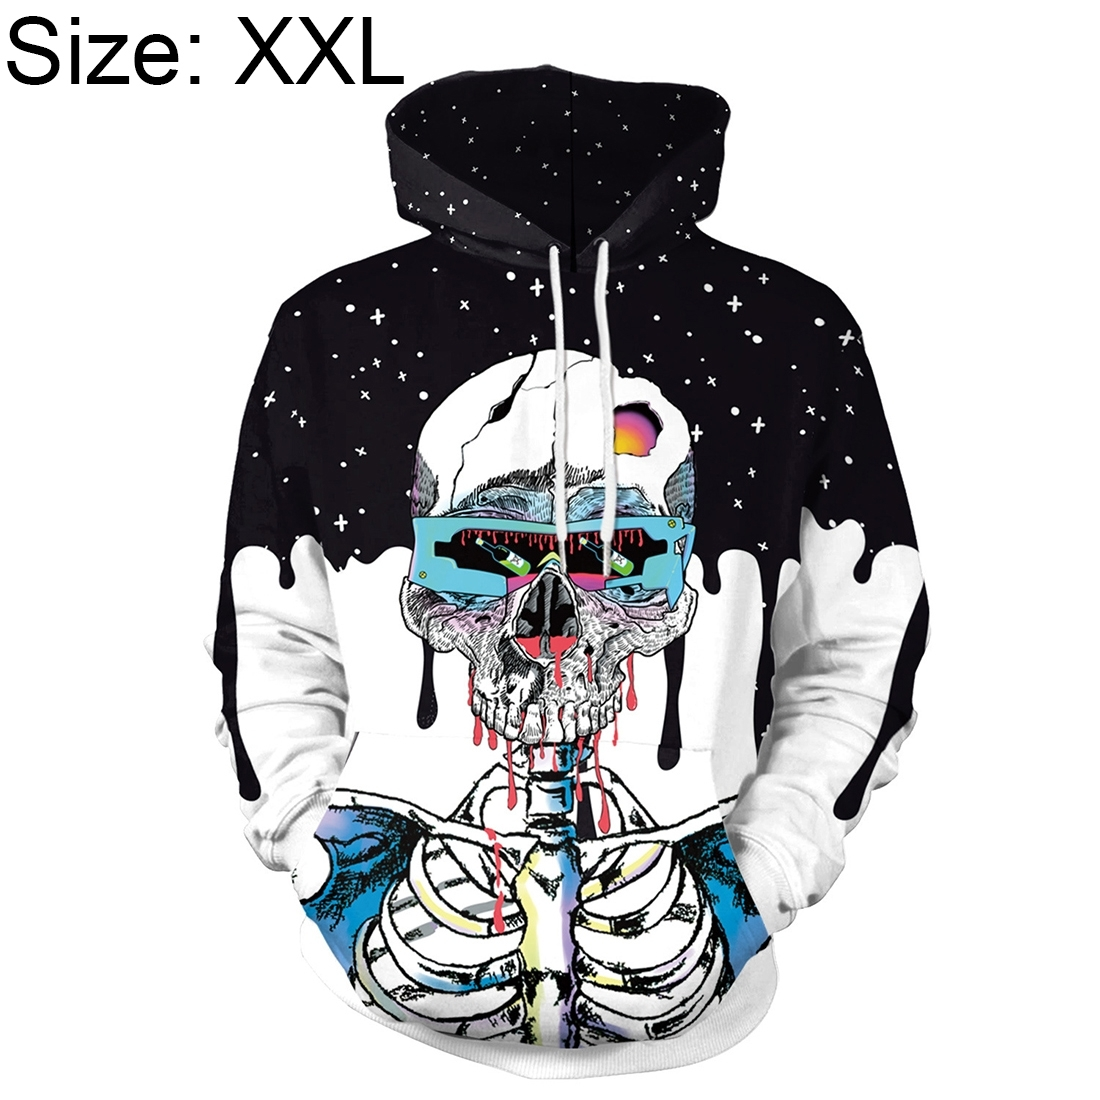 Halloween Trend Explosions Skull 3D Digital Print Unisex Coat Sweater with Hat Size: XXL